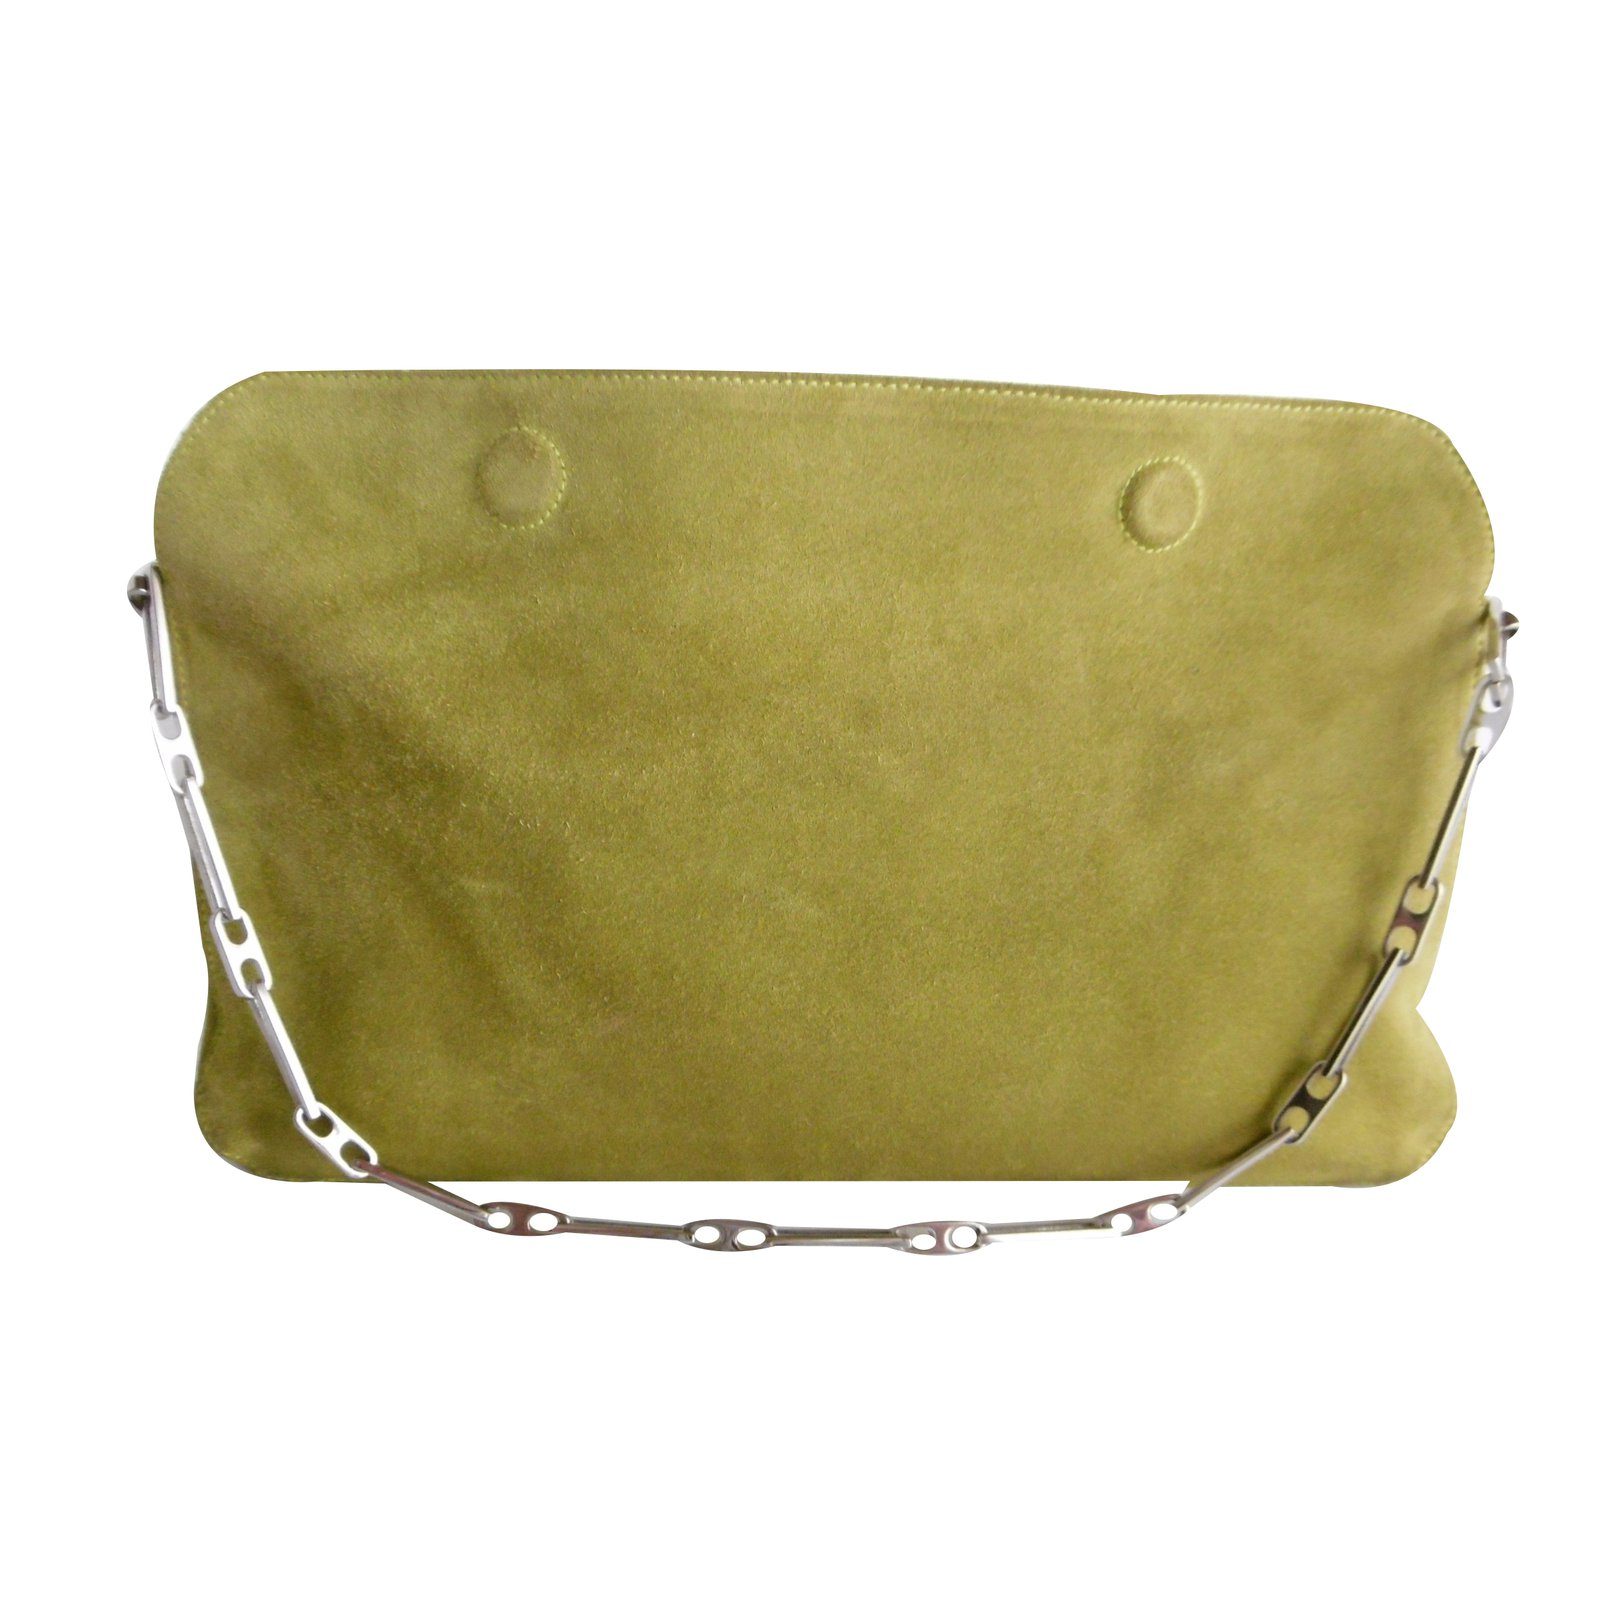 Nina Ricci Rectangular Chain Suede Shoulder Bag Handbags Green Ref 35811